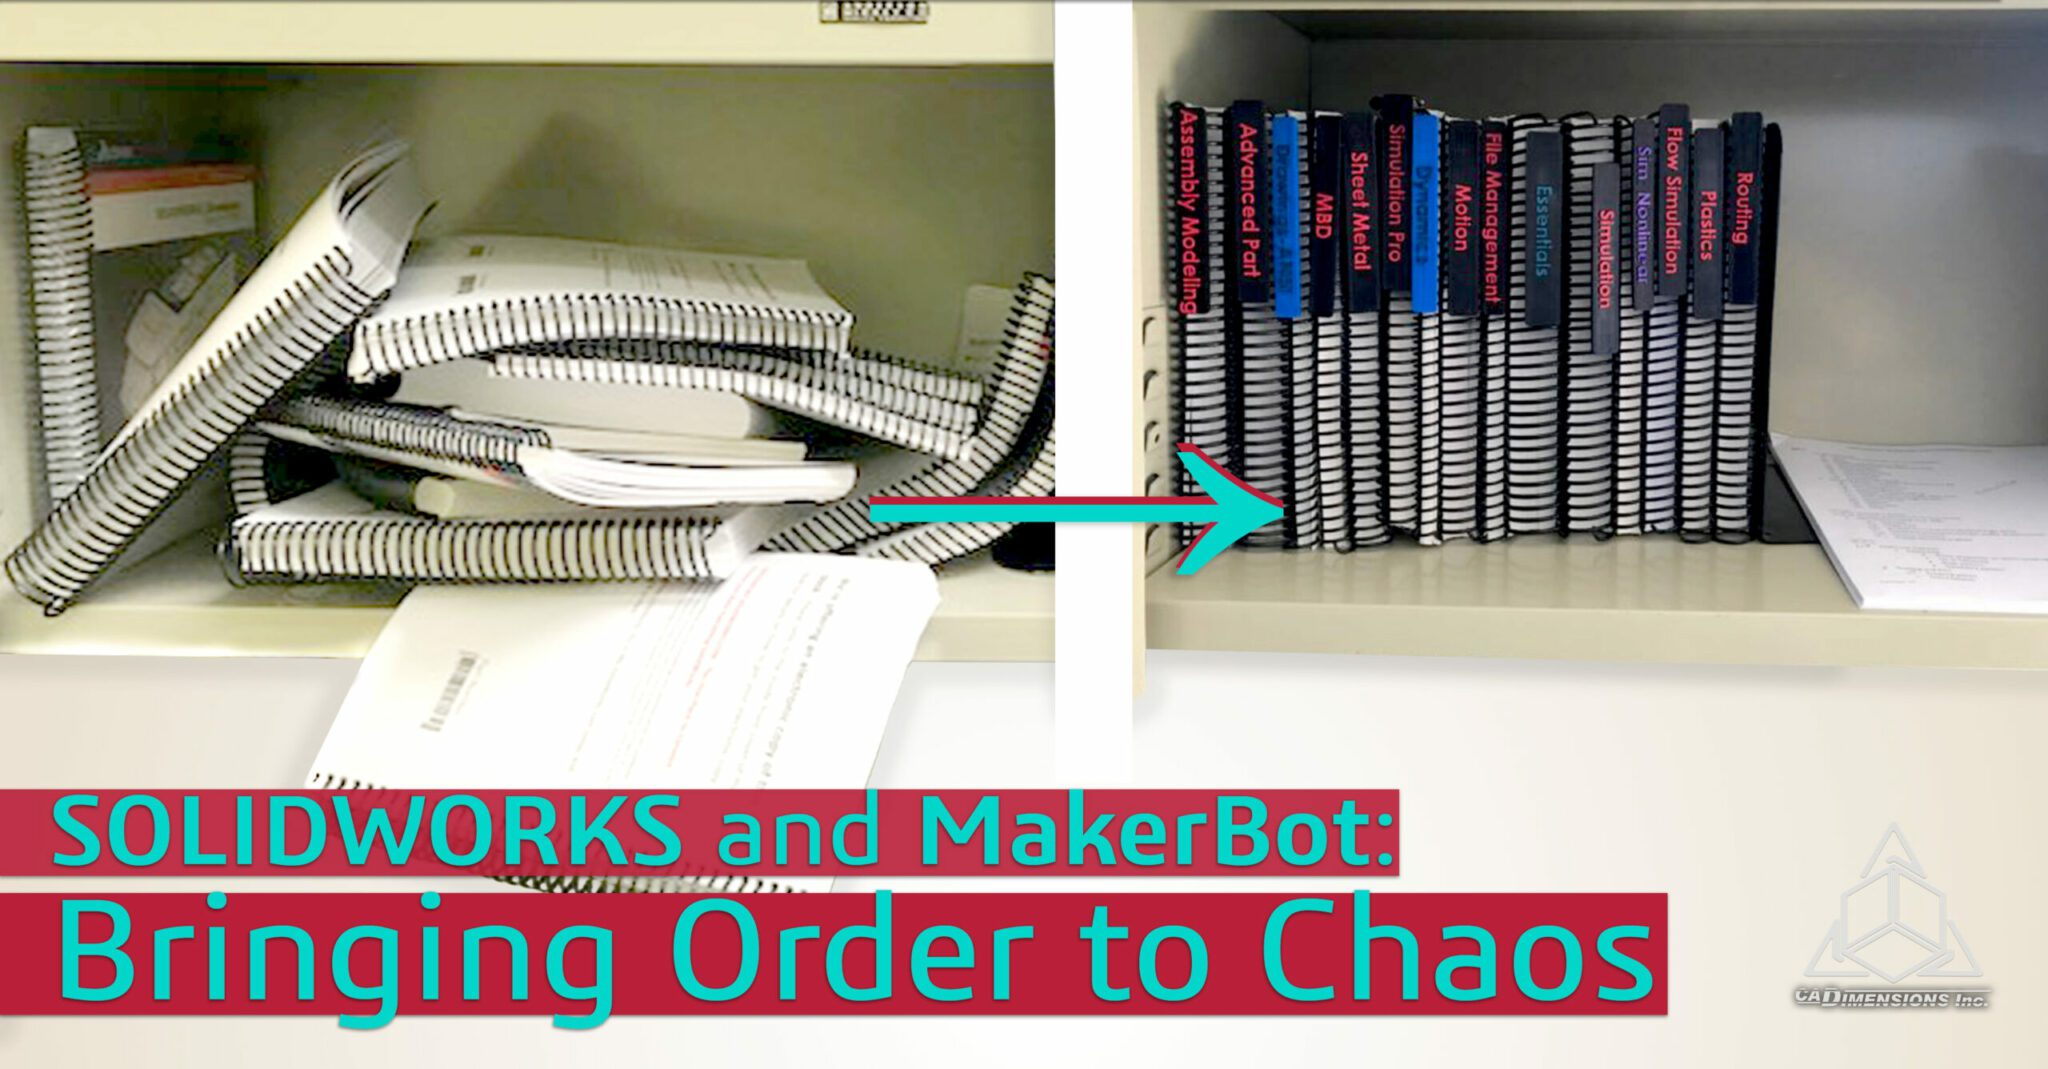 Correcting Chaos with SOLIDWORKS and MakerBot